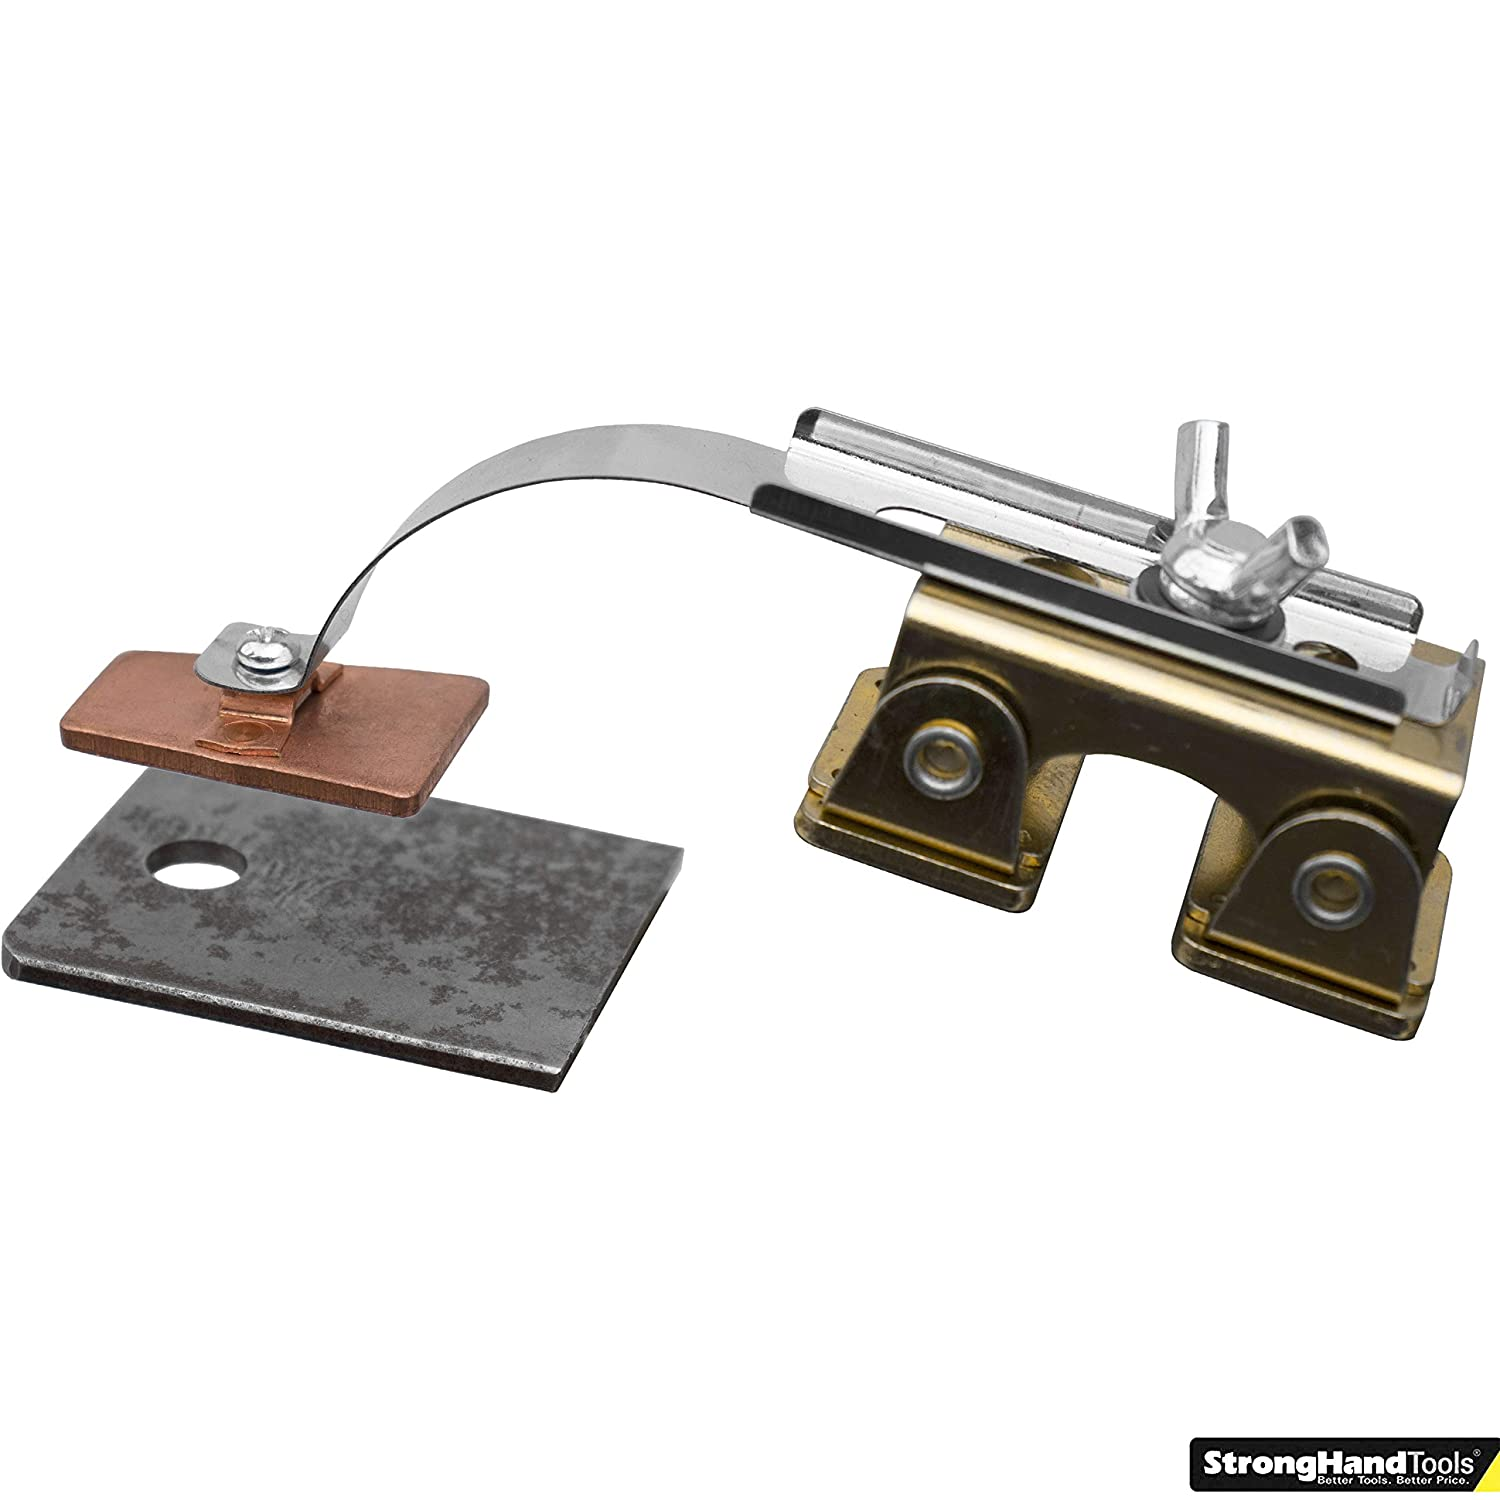 Hole Plug Magnet Strong Hand Tools Pivoting V-Pad Spring Loaded Arm Hole Welds AGK320 Heat Dissipating Copper Pad